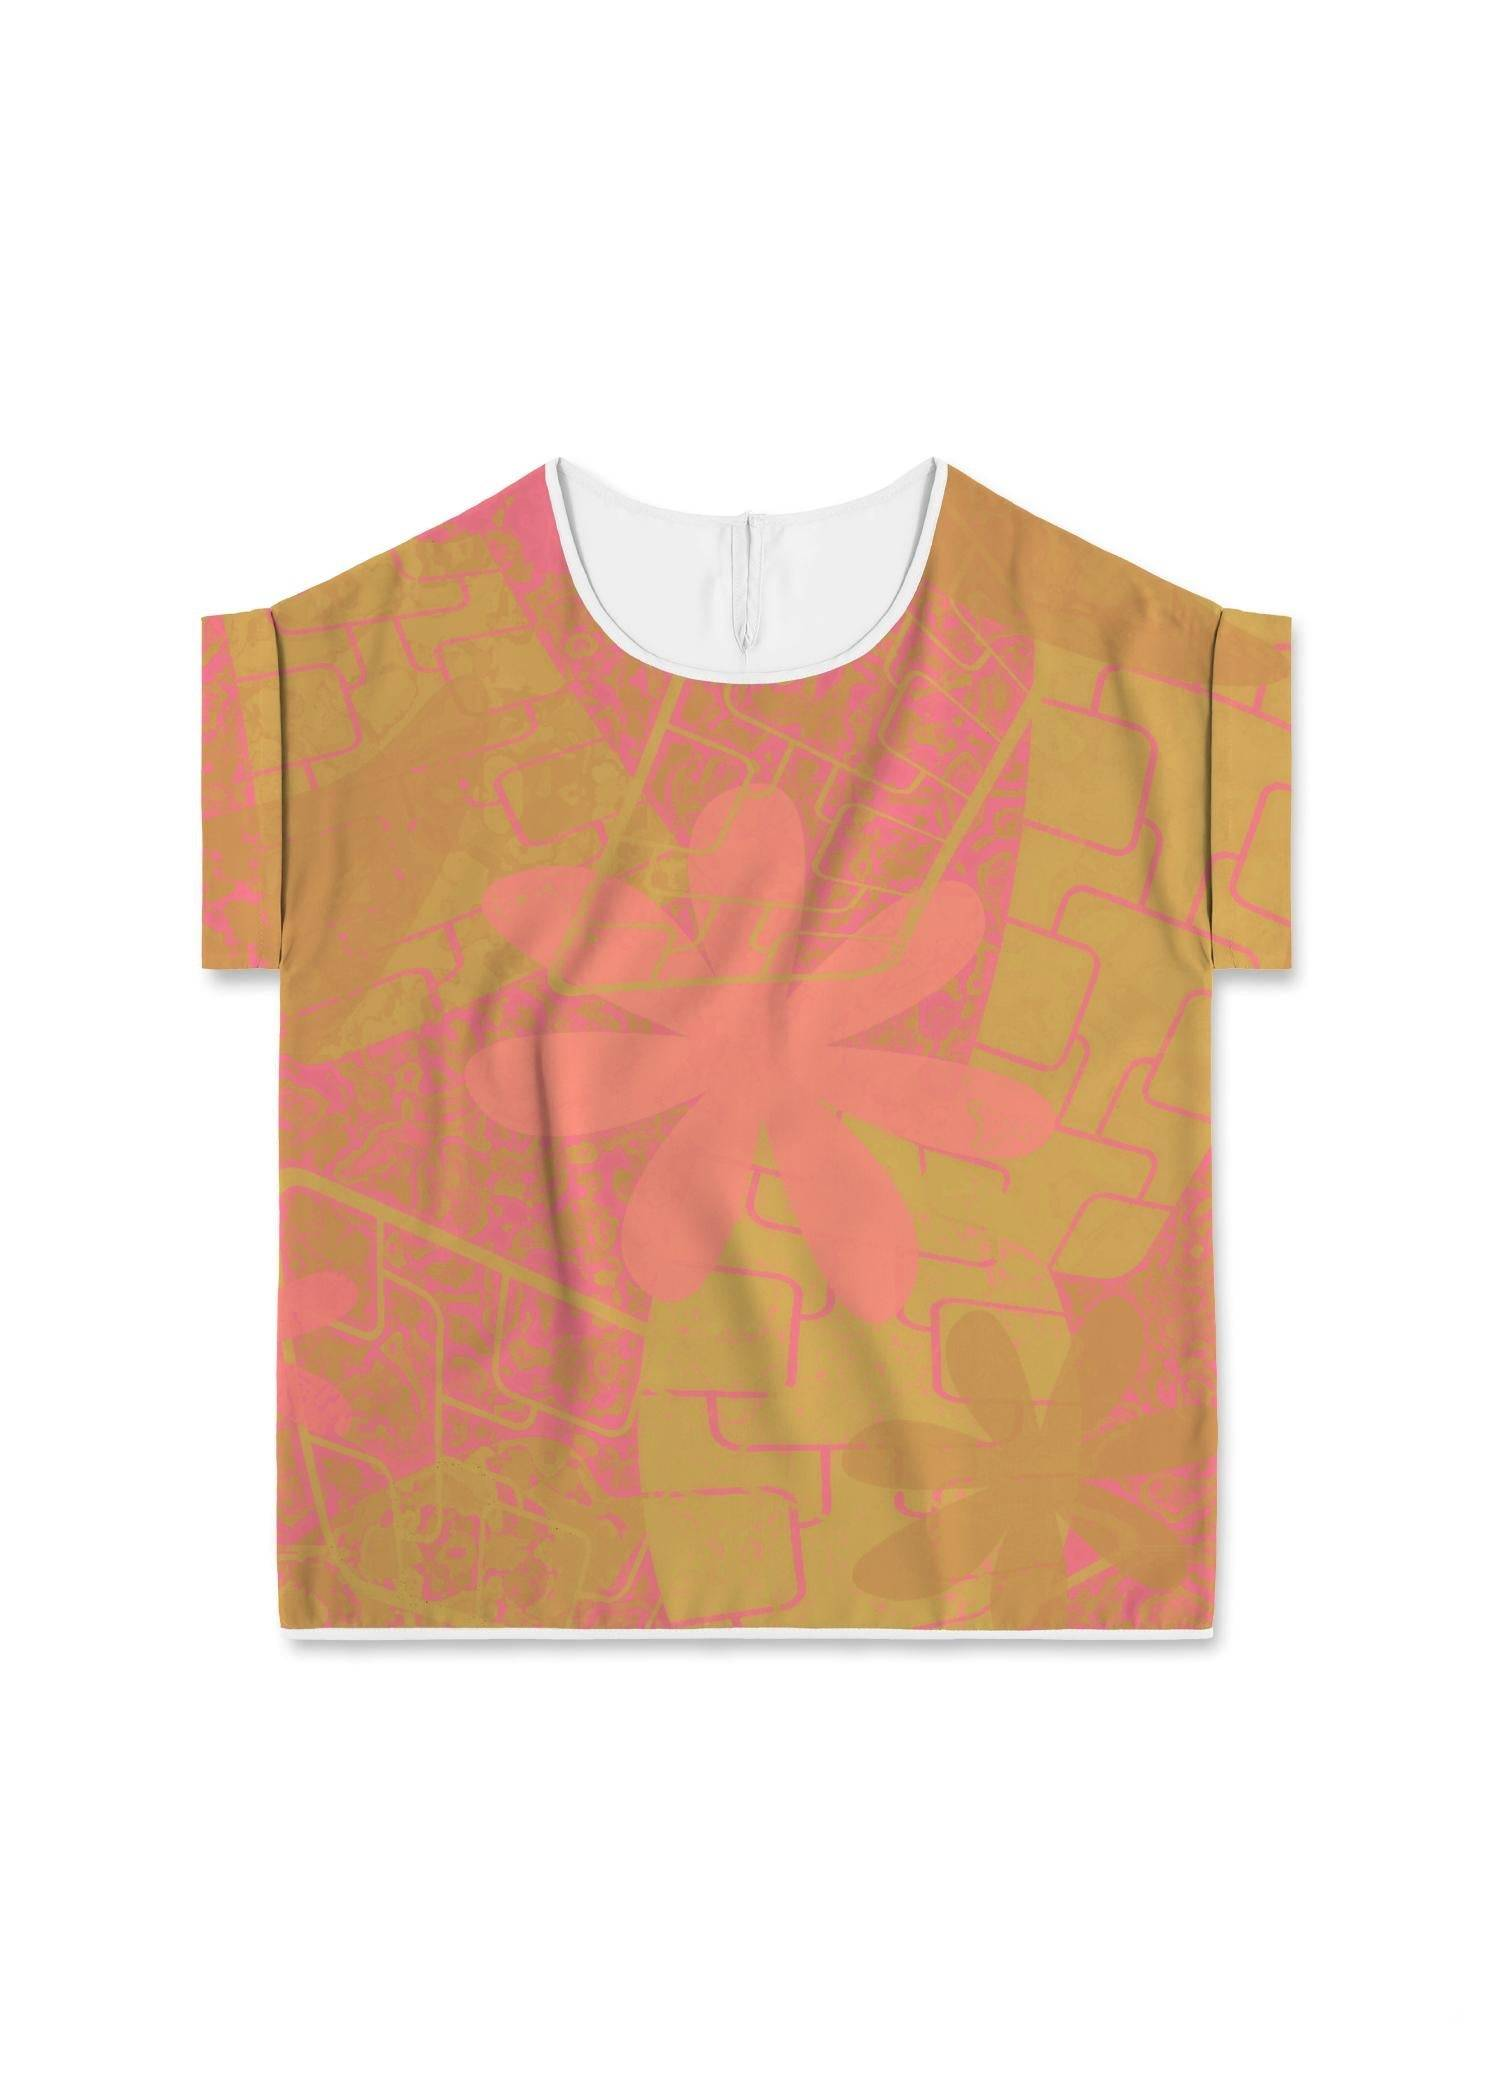 VIDA Modern Tee - Garden Trellis; Rose Gold by VIDA Original Artist  - Size: Medium